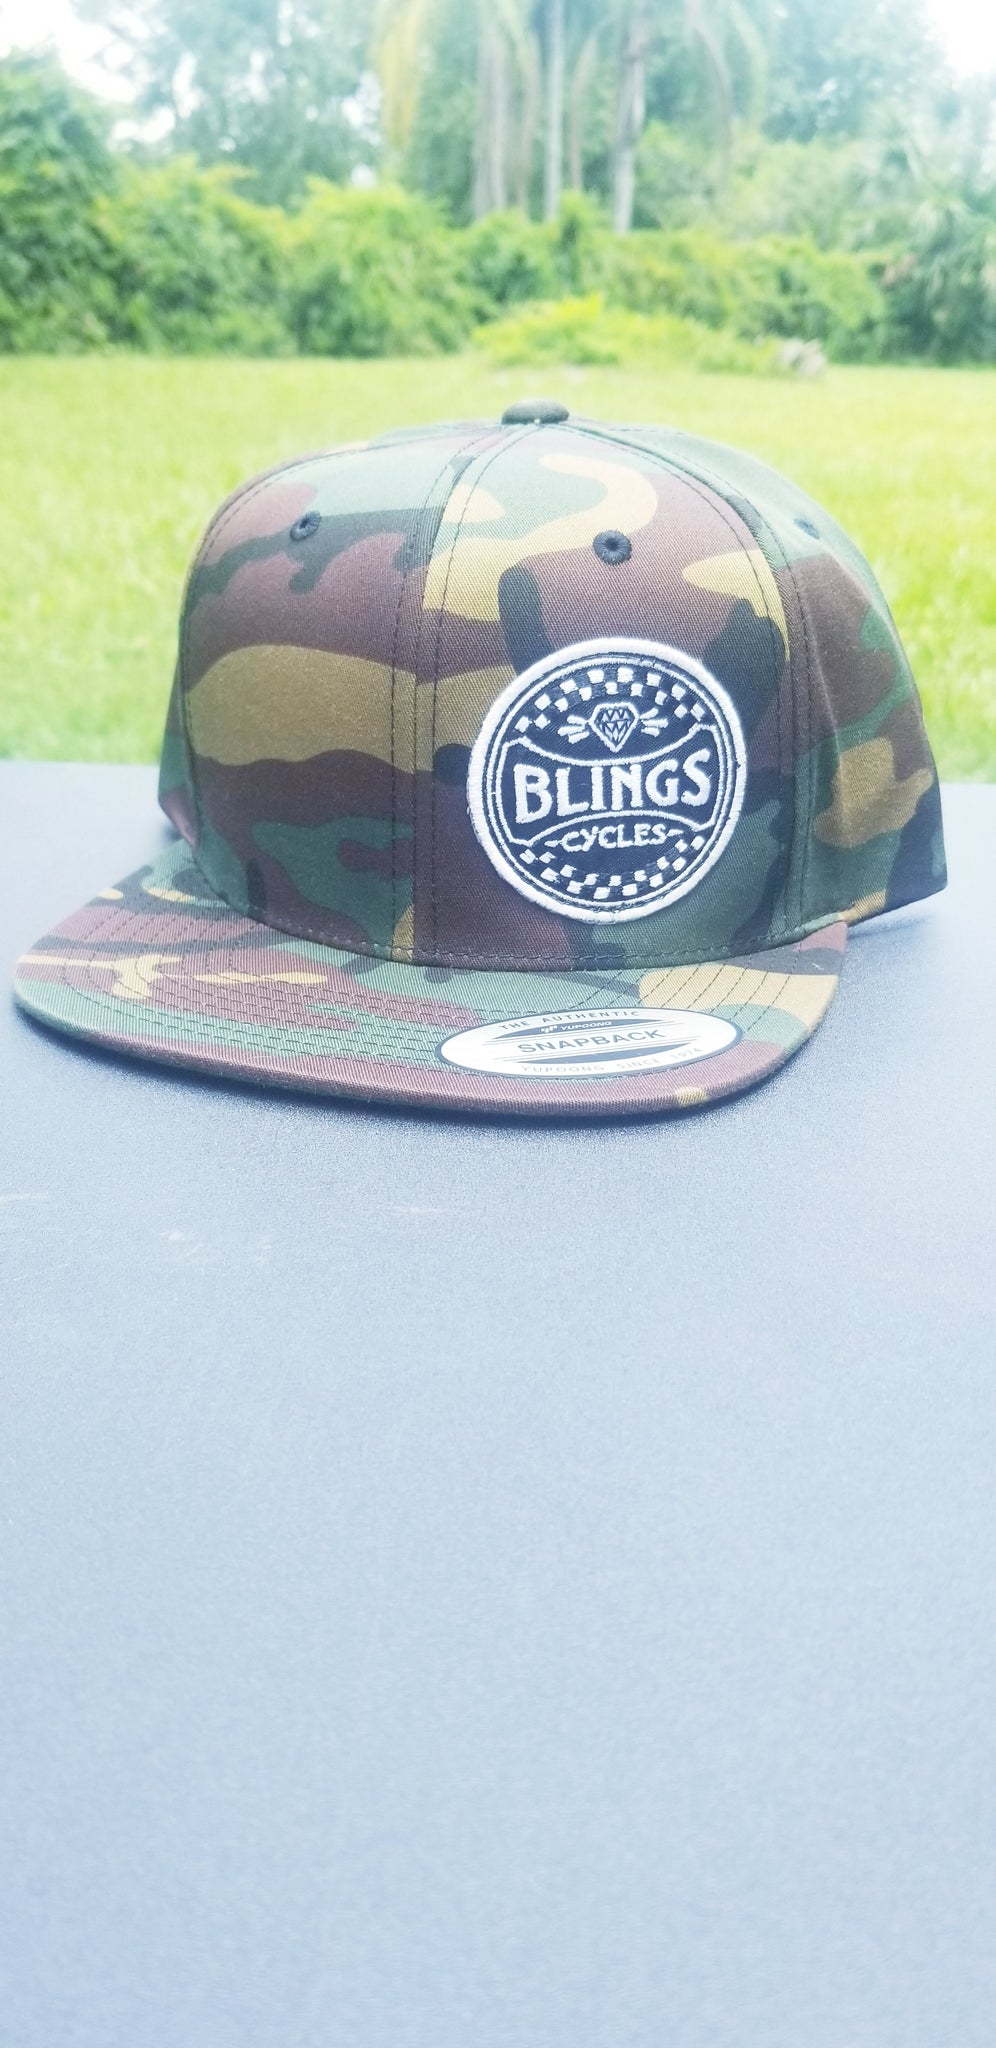 BLINGS CYCLES HATS